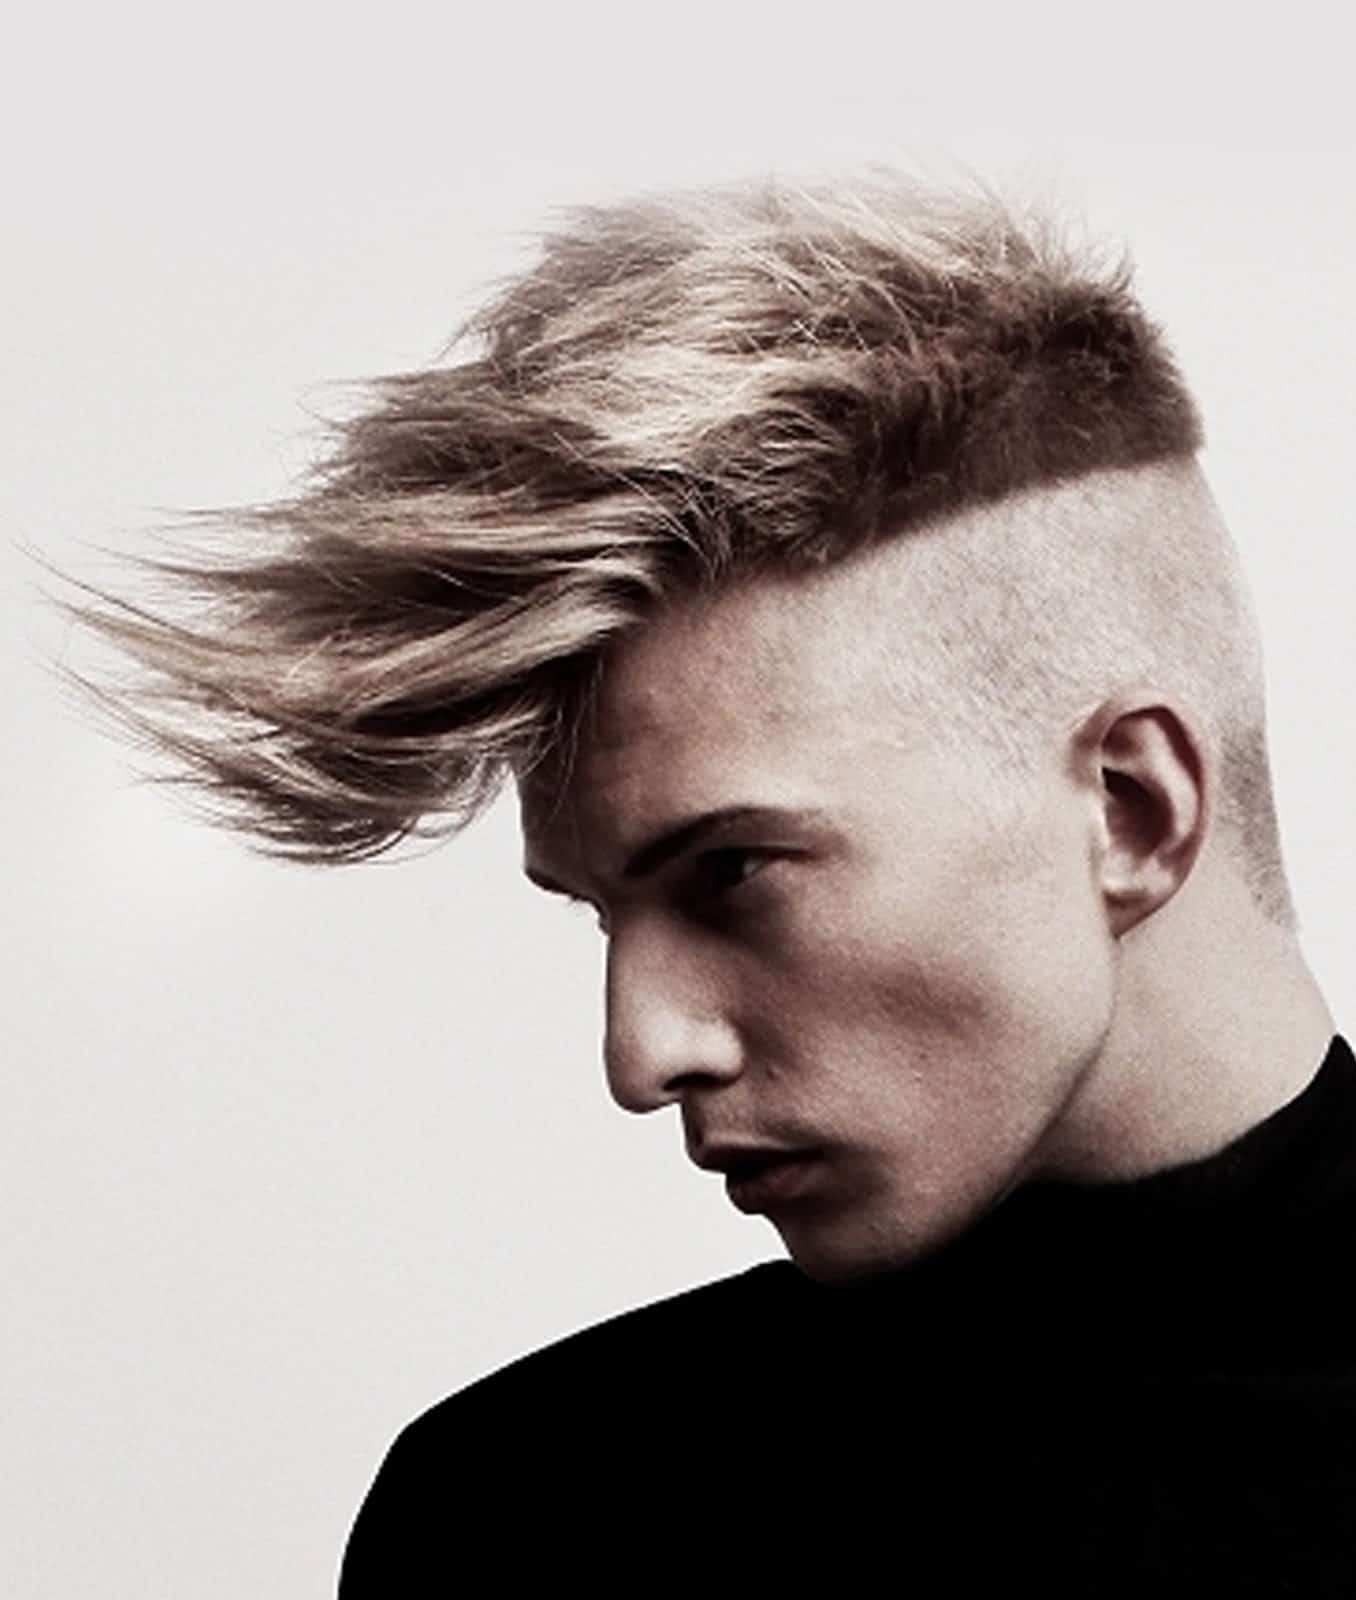 Mohawk Haircut Get Creative With The New Mens Hair Trend